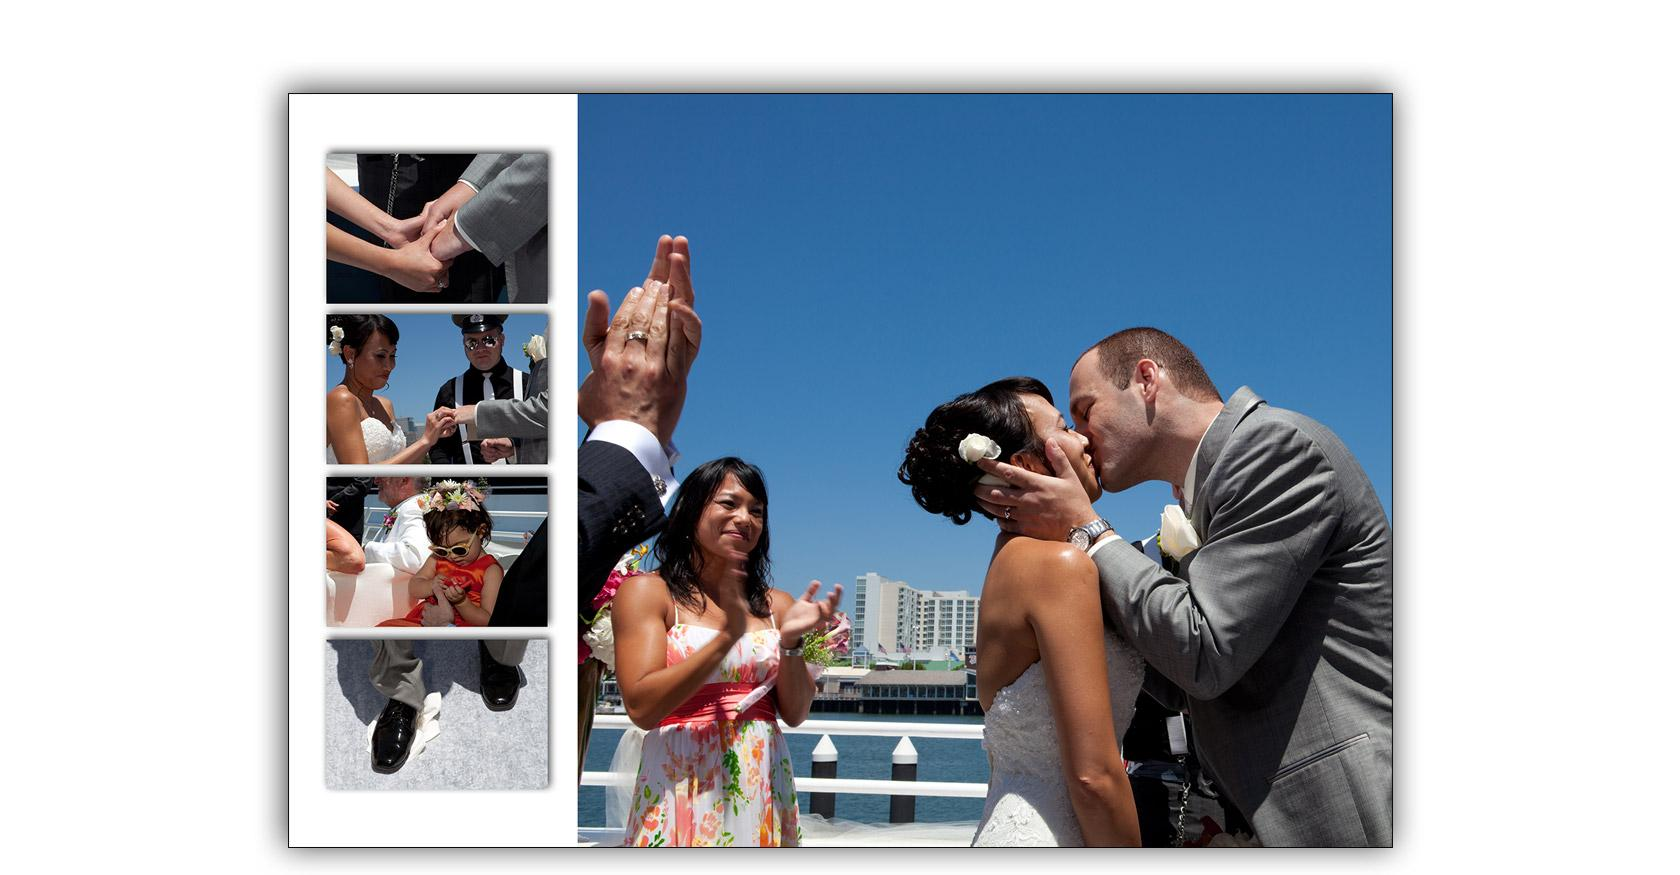 San Francisco Bay yacht boat wedding cruise Commodore Events Merlot photography album 07